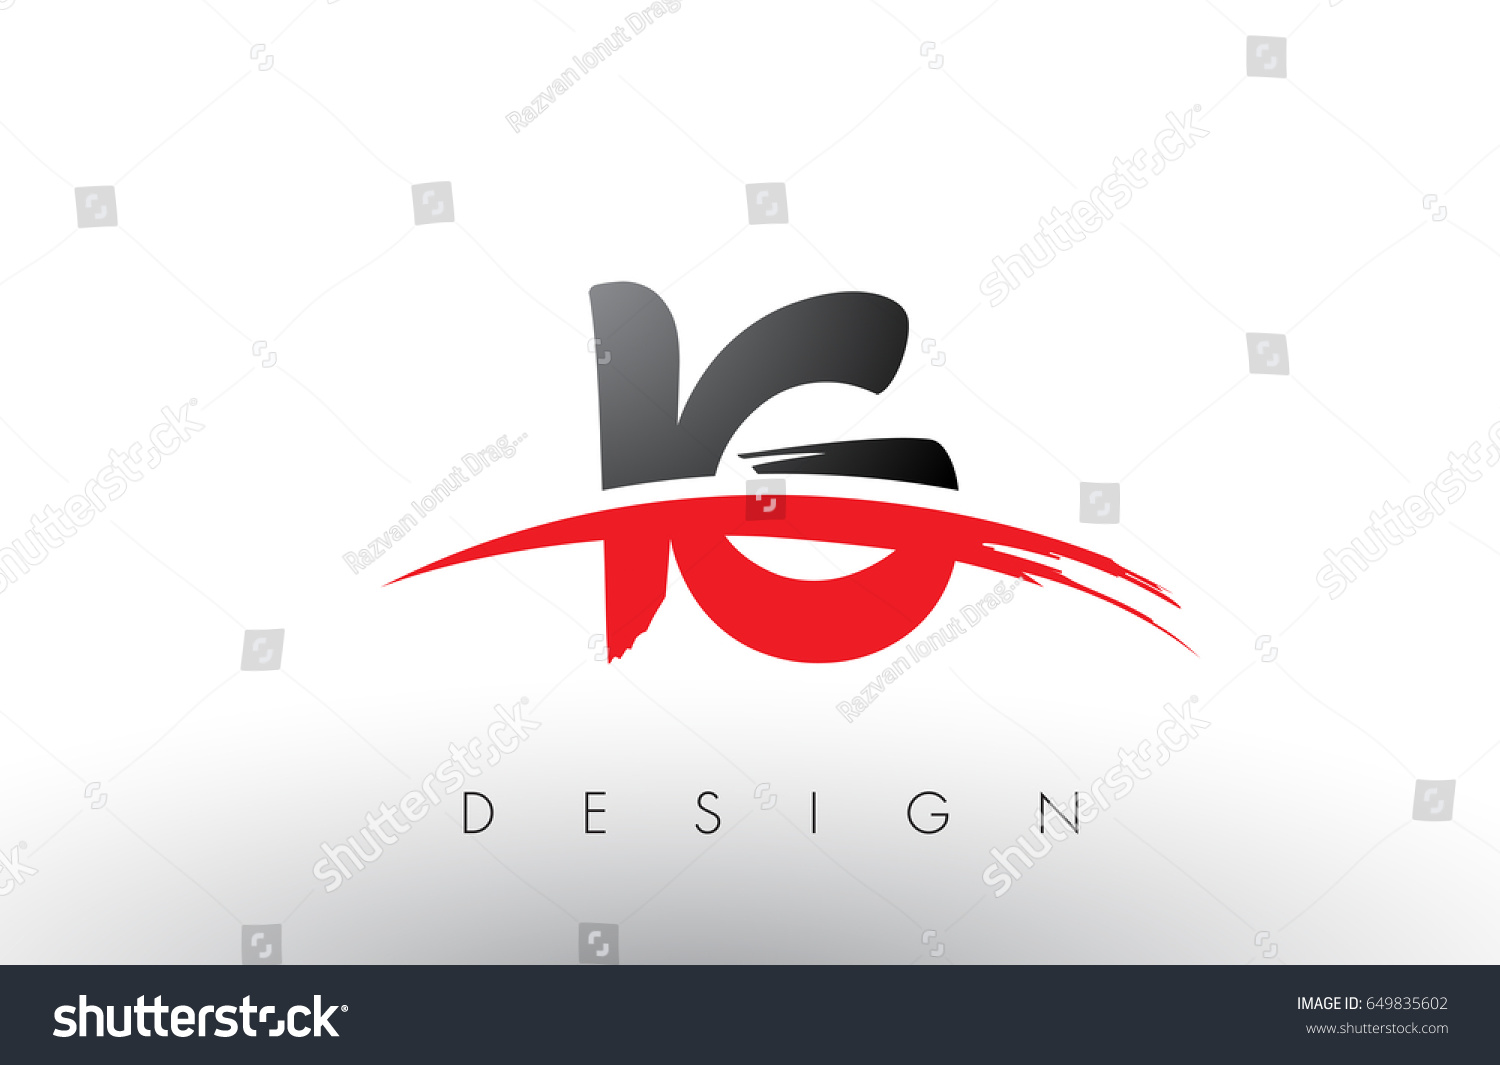 IG I Q Brush Logo Letters Design with Red and Black Colors and Brush Letter  Concept.